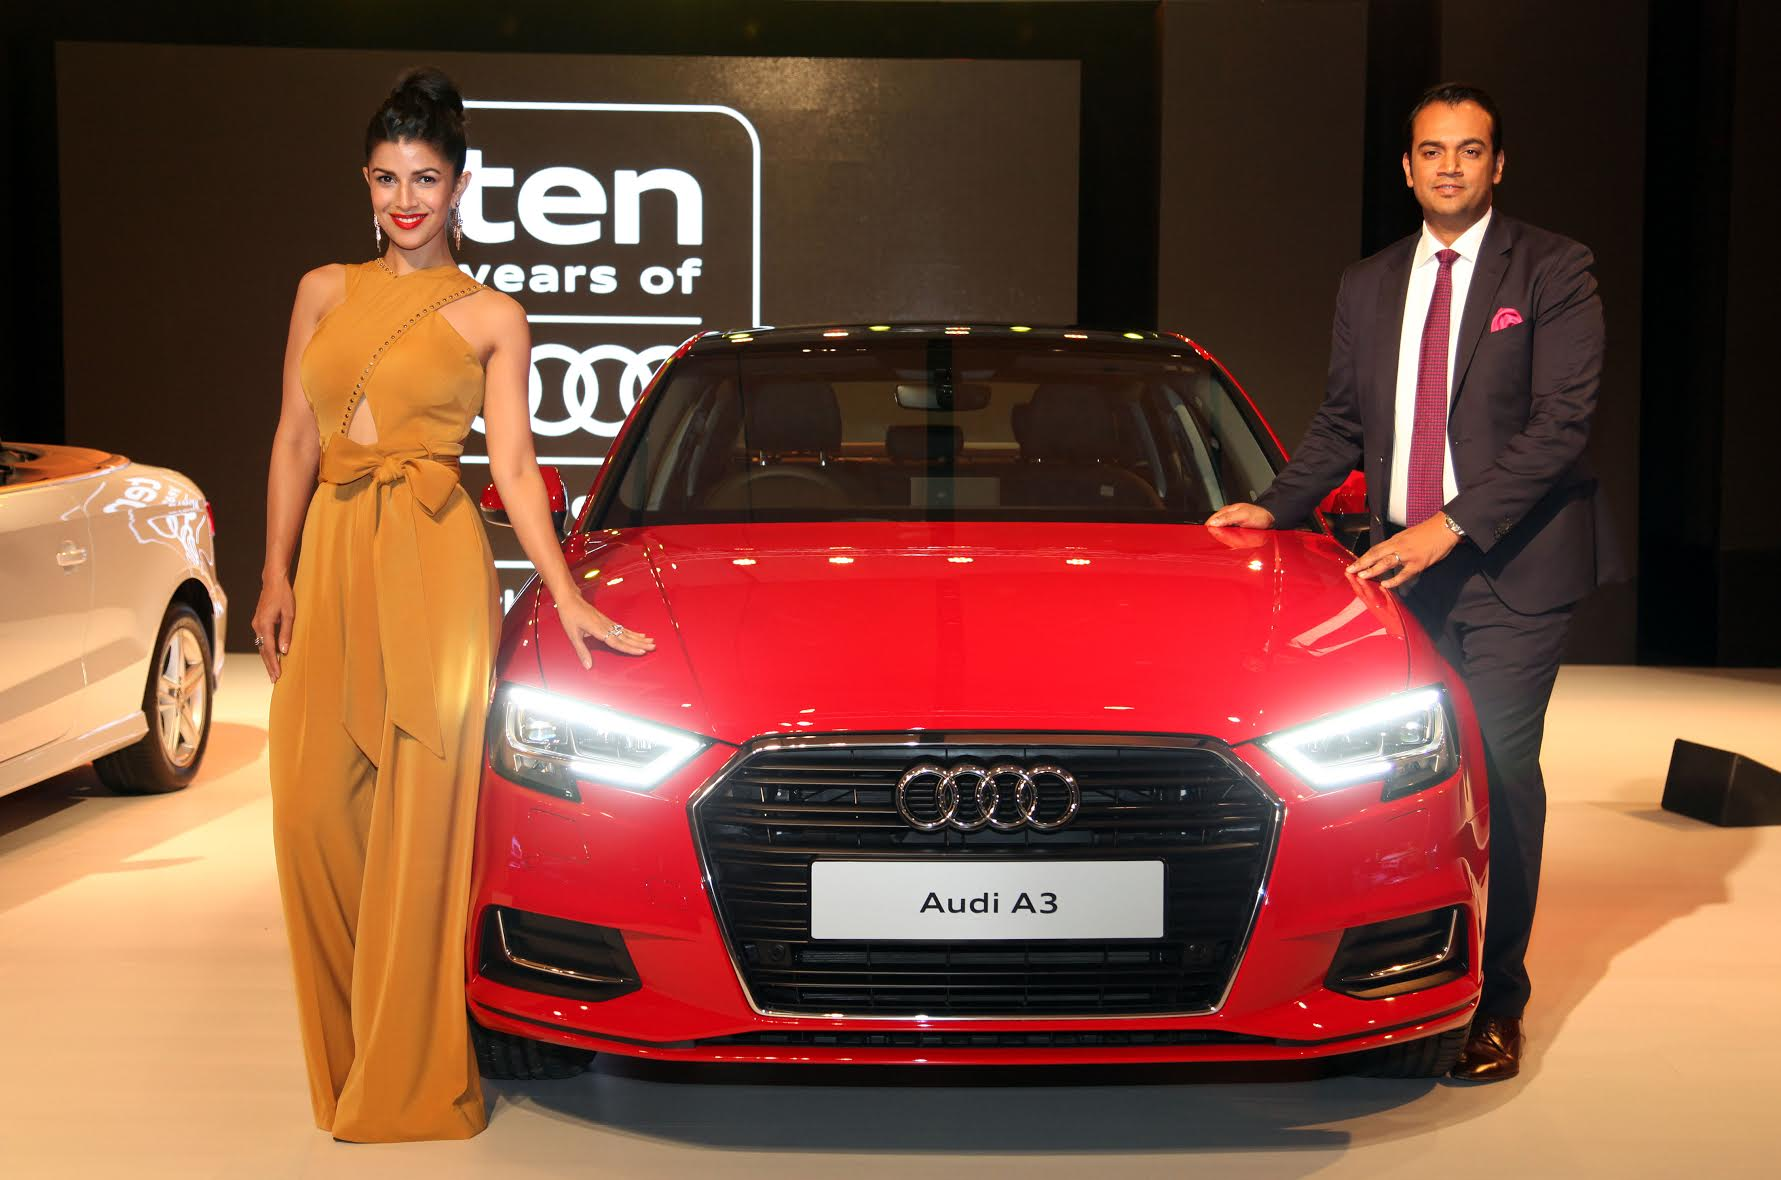 2017 Audi A3 Facelift India Launch In February 2017 Price Rs 25 Lakh